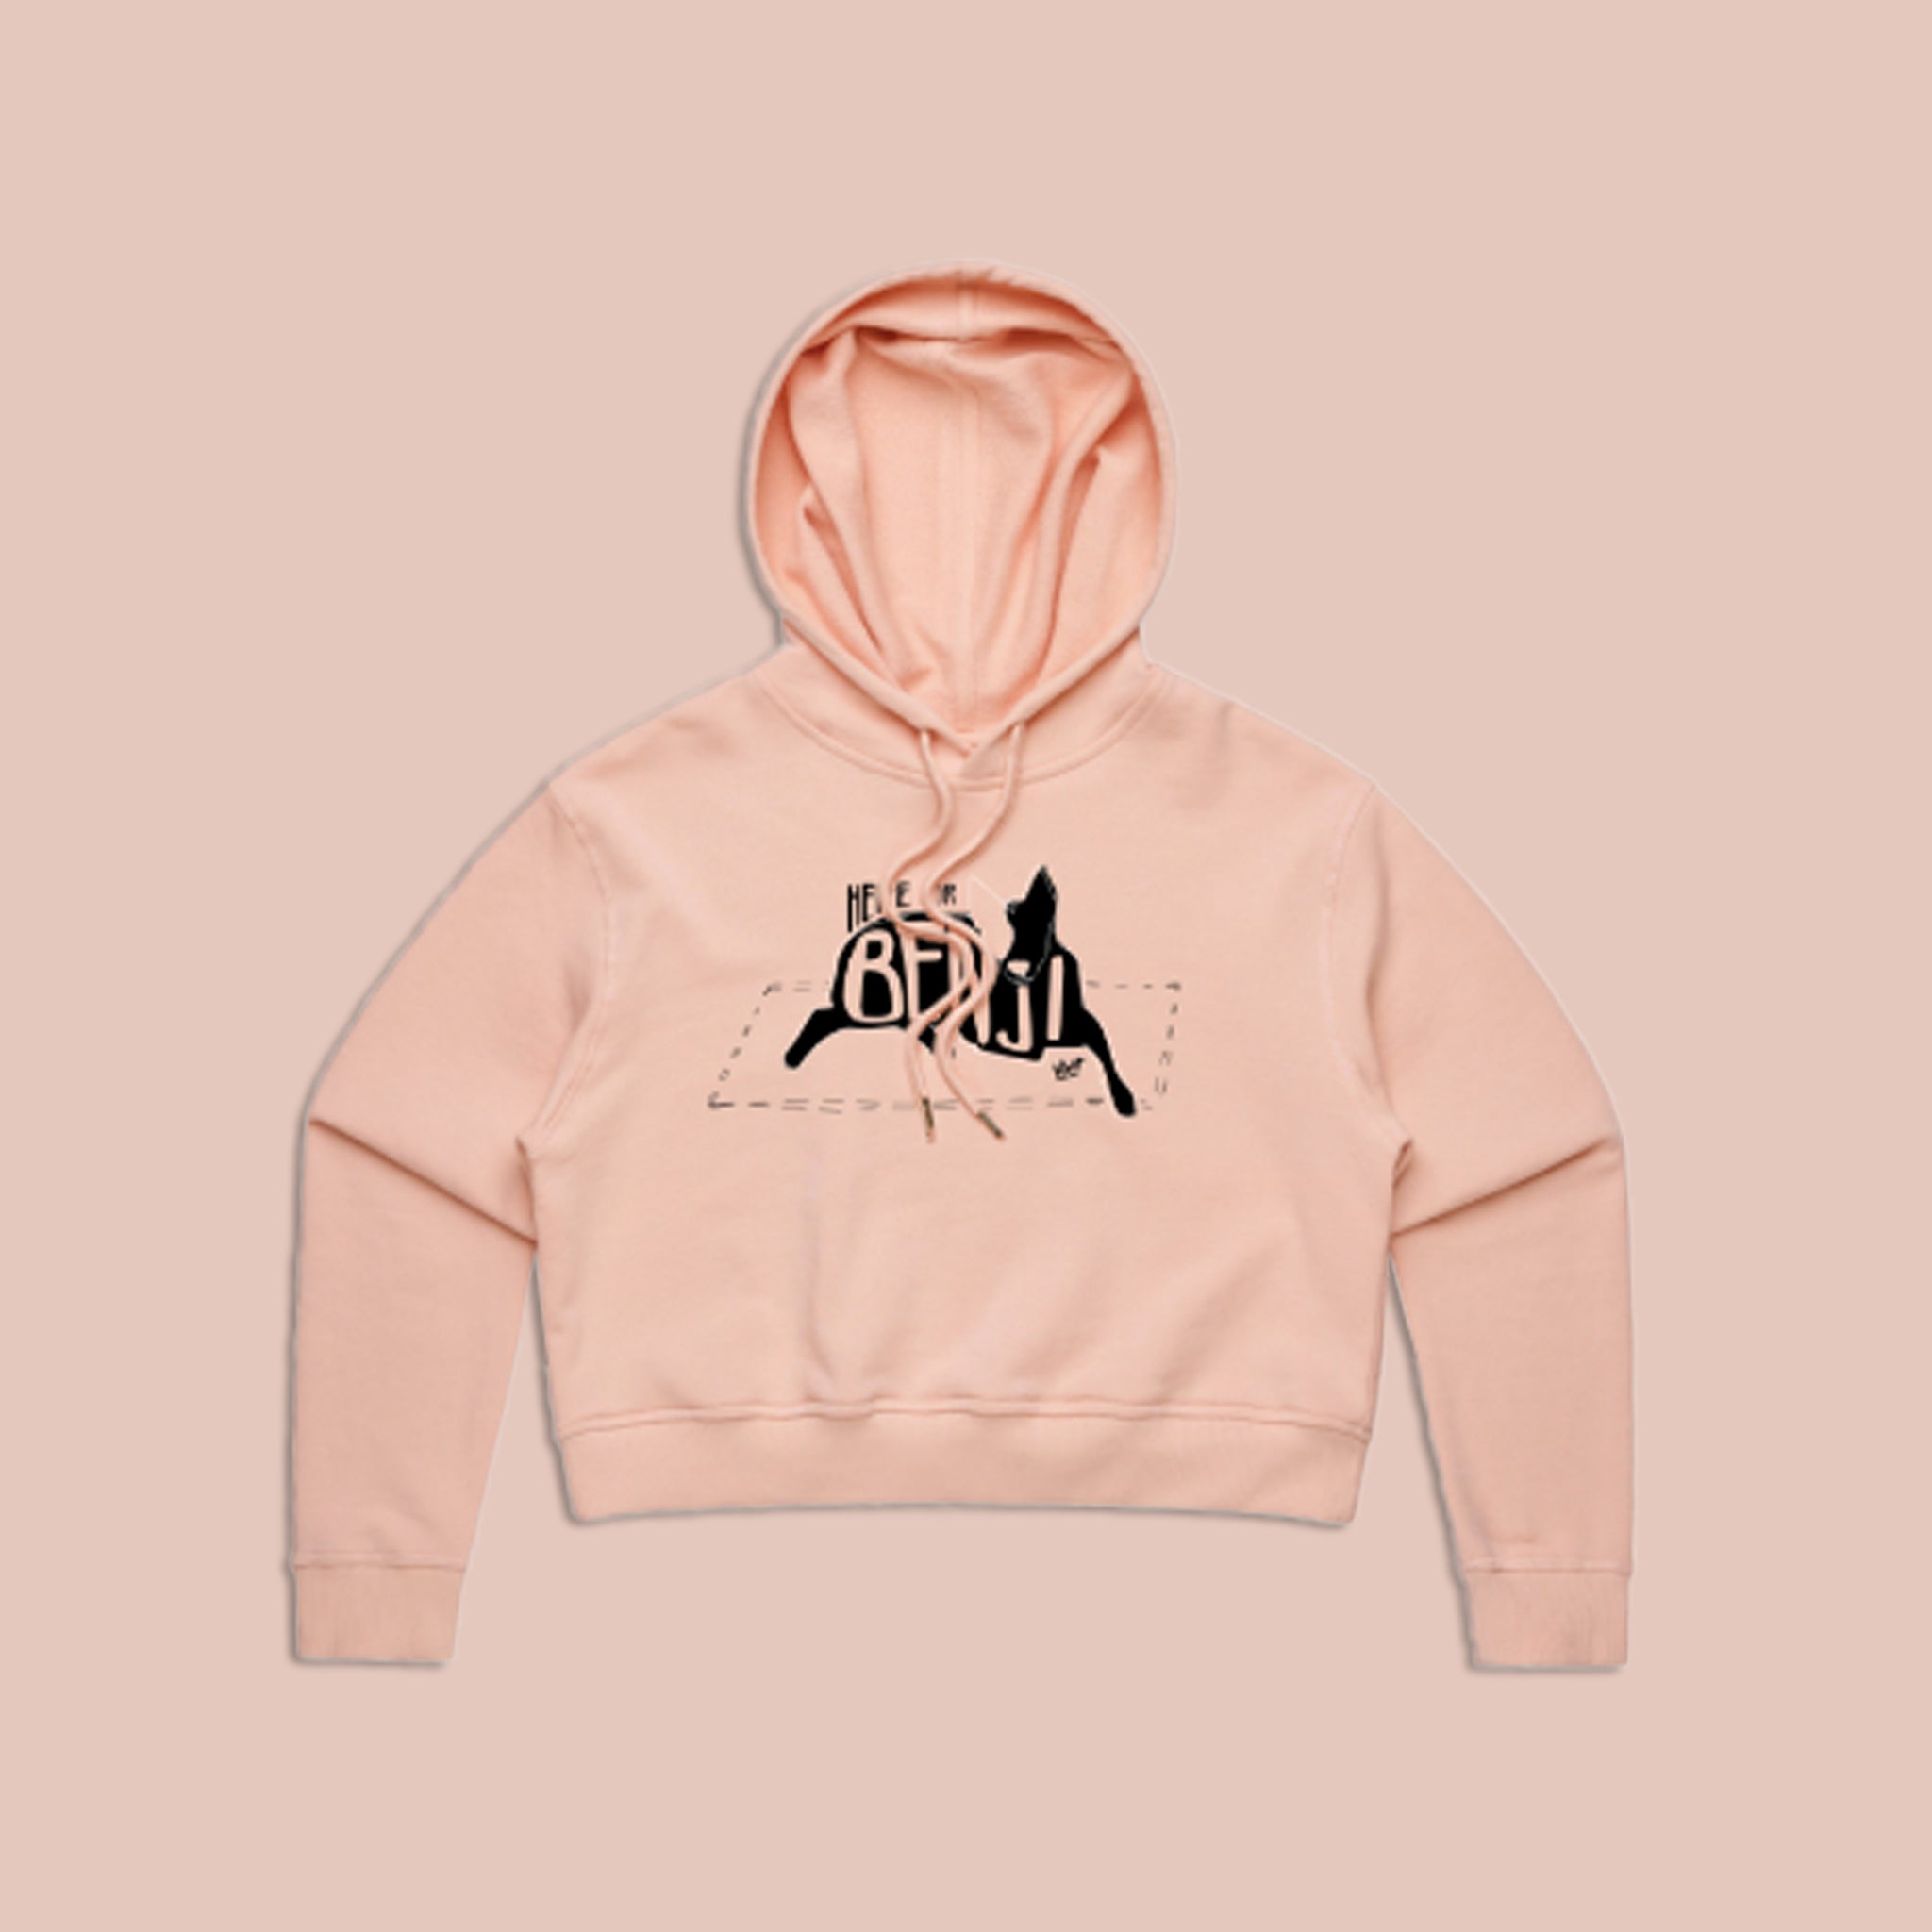 Here For Benji Crop Hoodie